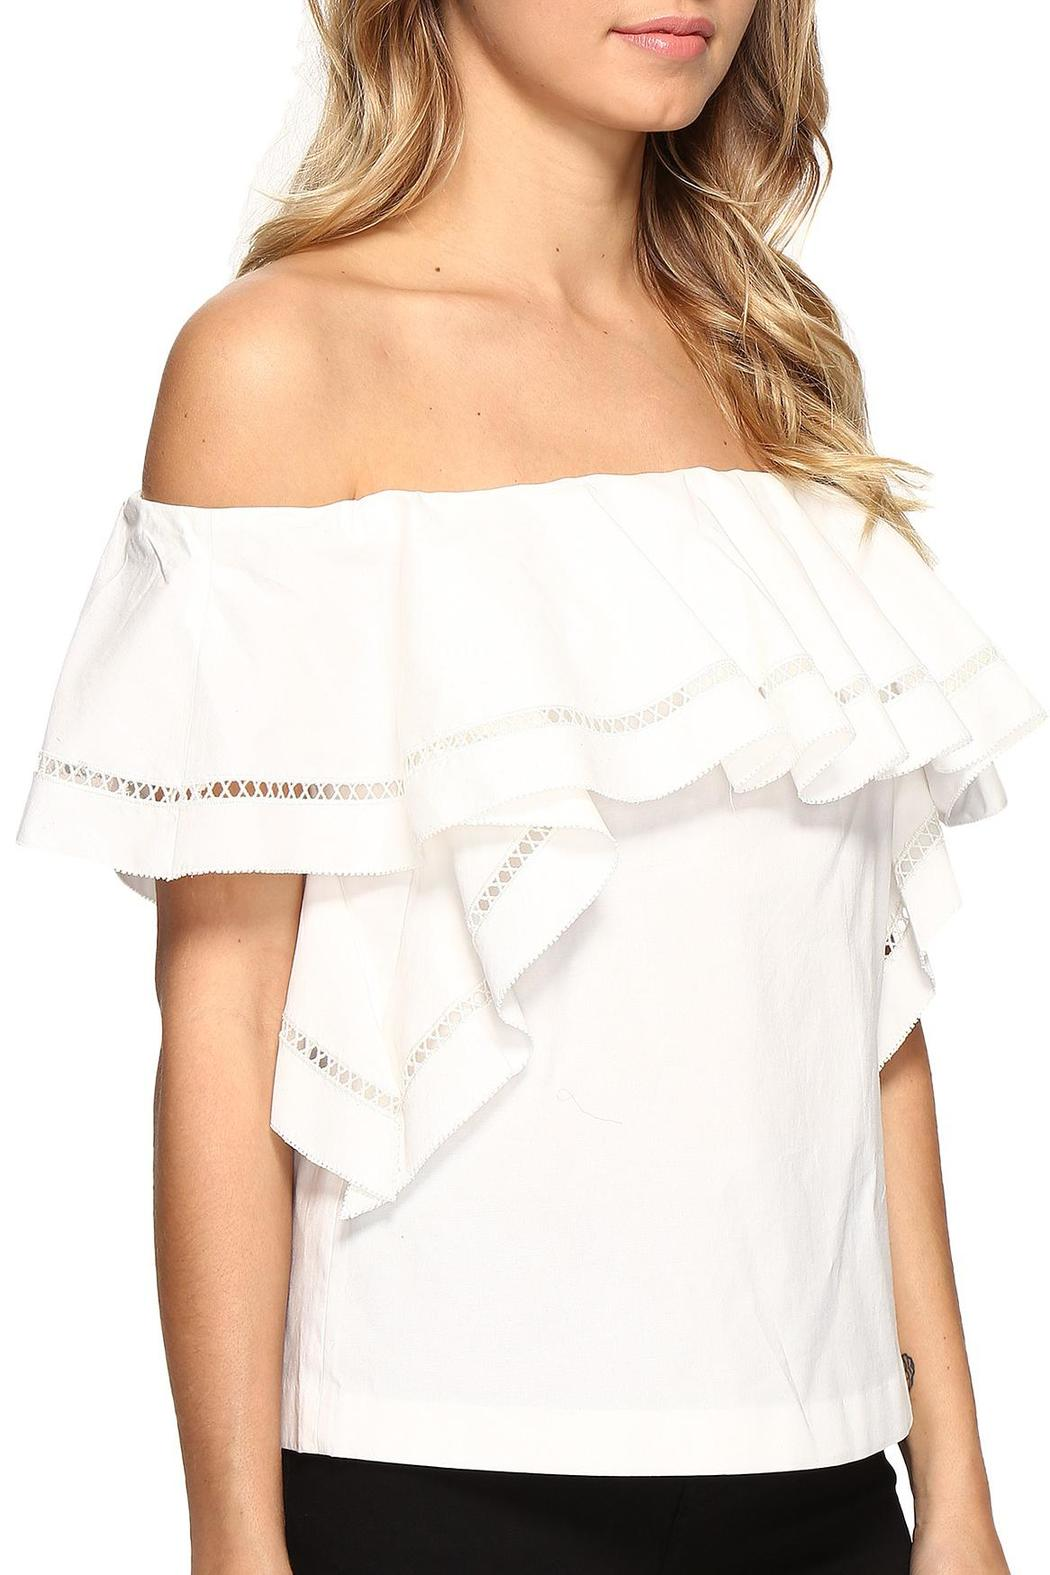 b37481506c3 Rachel Zoe Leanna Off The Shoulder Top from Dallas by Pax & Parker ...